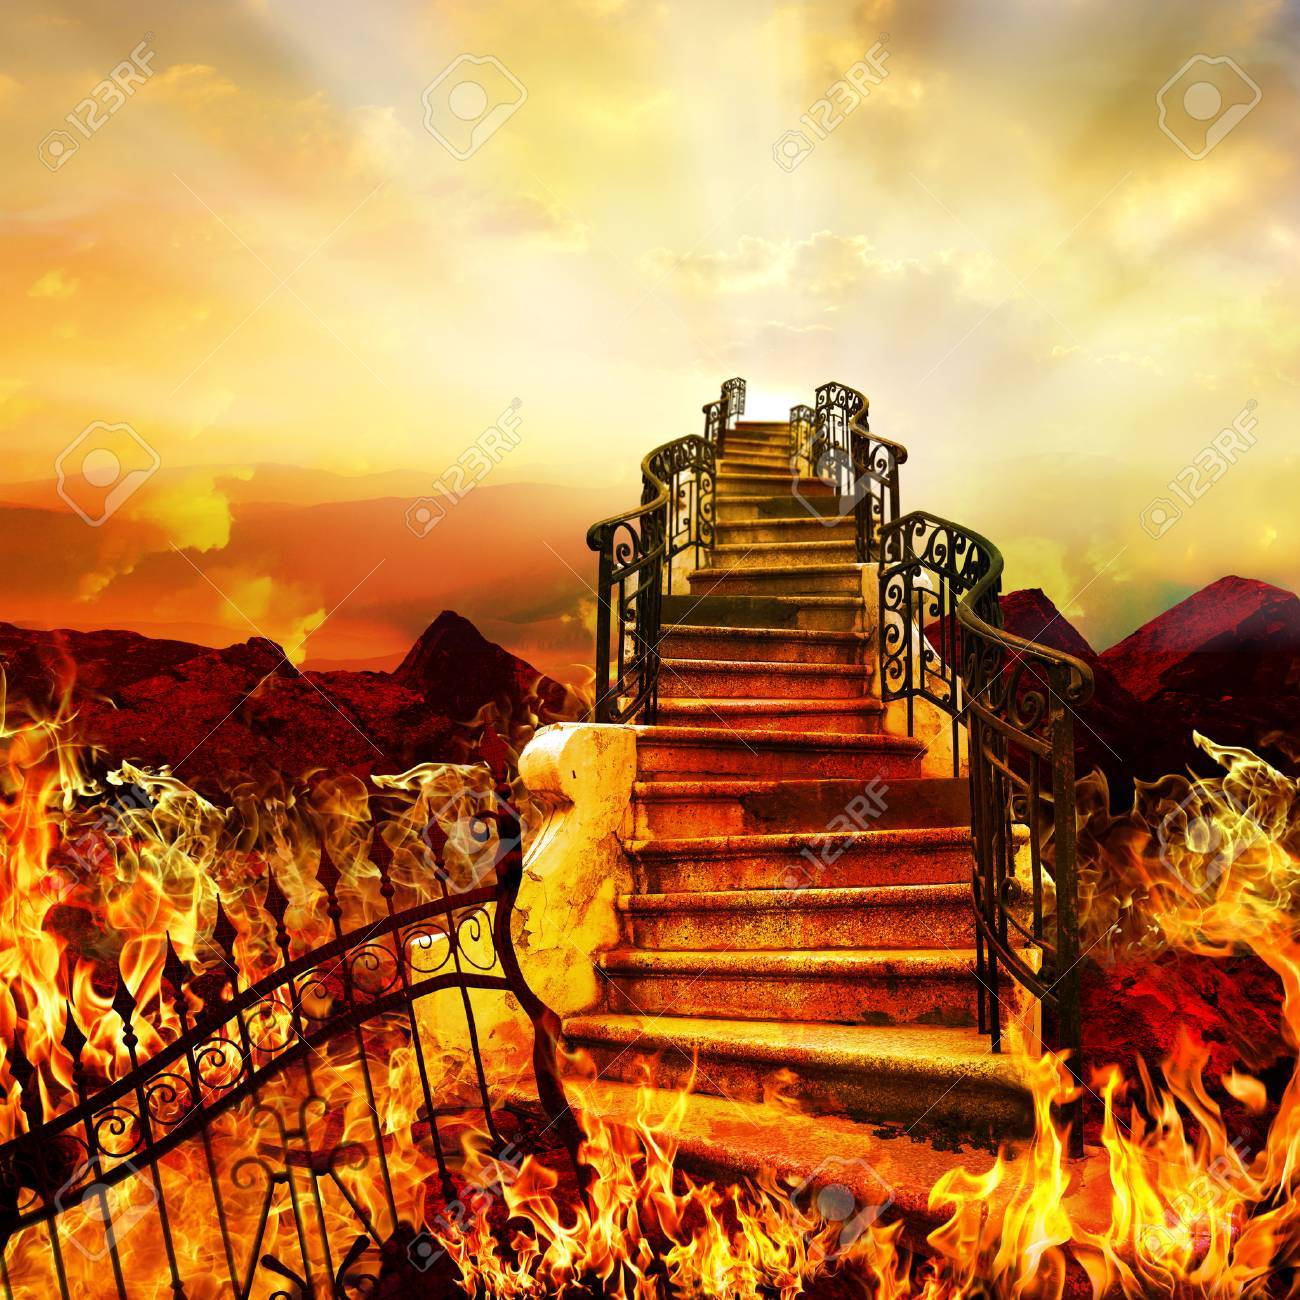 Stairway to Heaven Coming from Hell. - 53394494